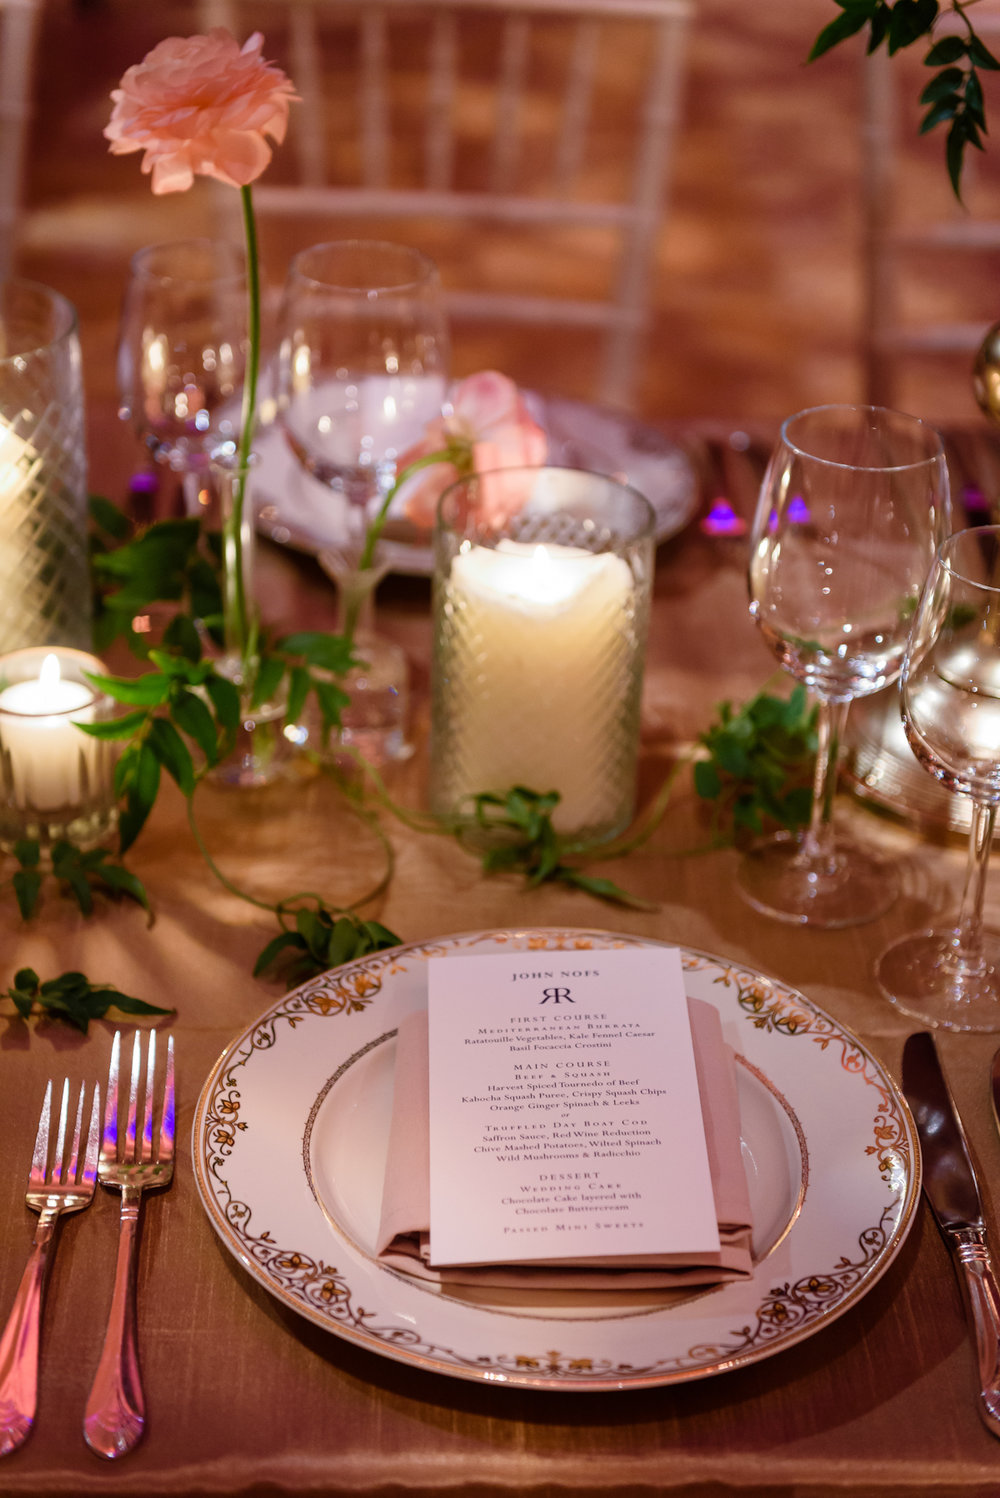 Weylin Wedding: Place setting with gold chargers